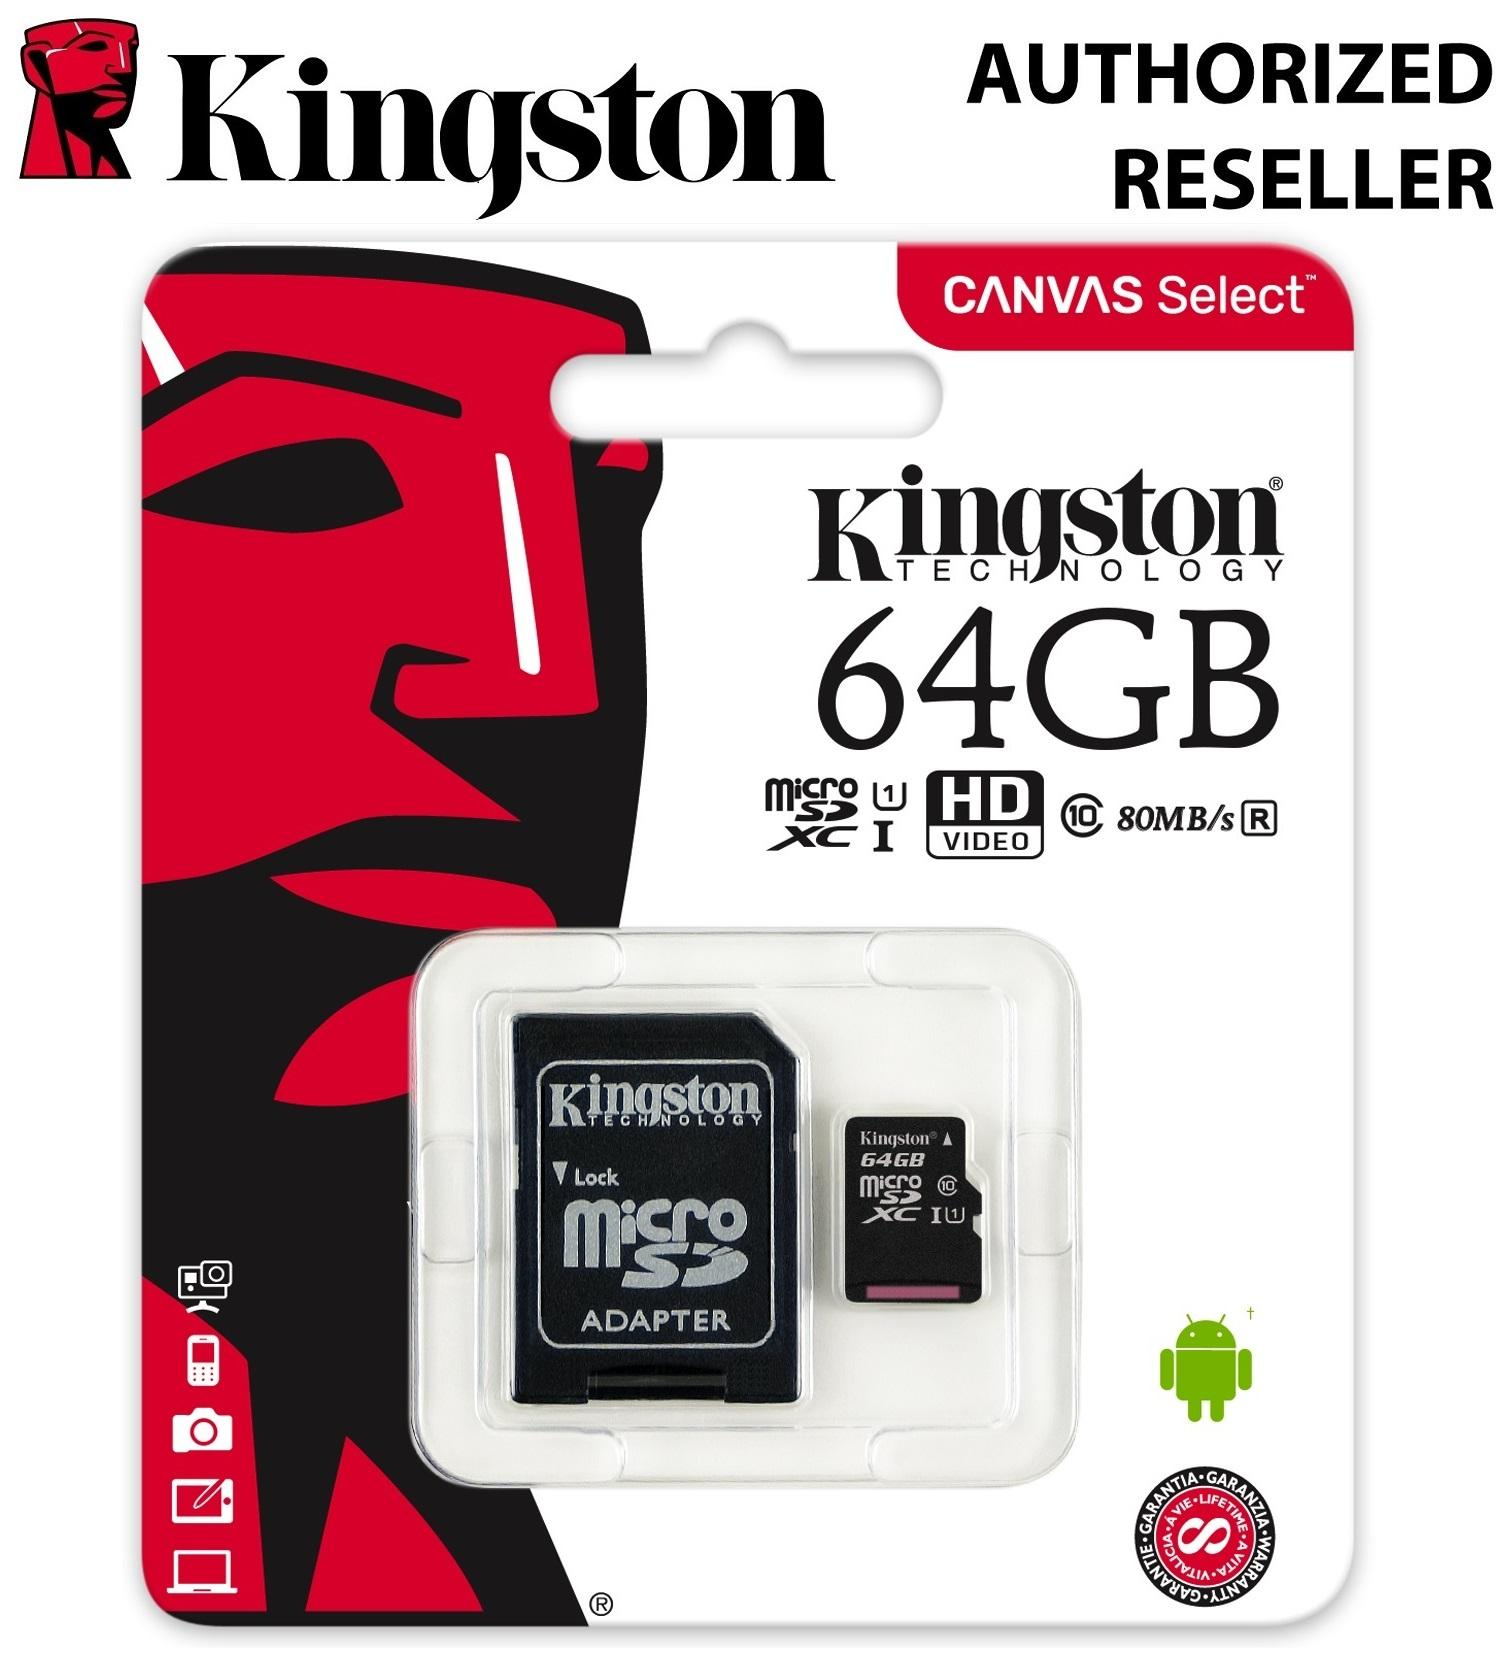 Kingston microSDXC 64GB Class 10 UHS-I 80MB/s Flash Memory Card (Canvas Select)